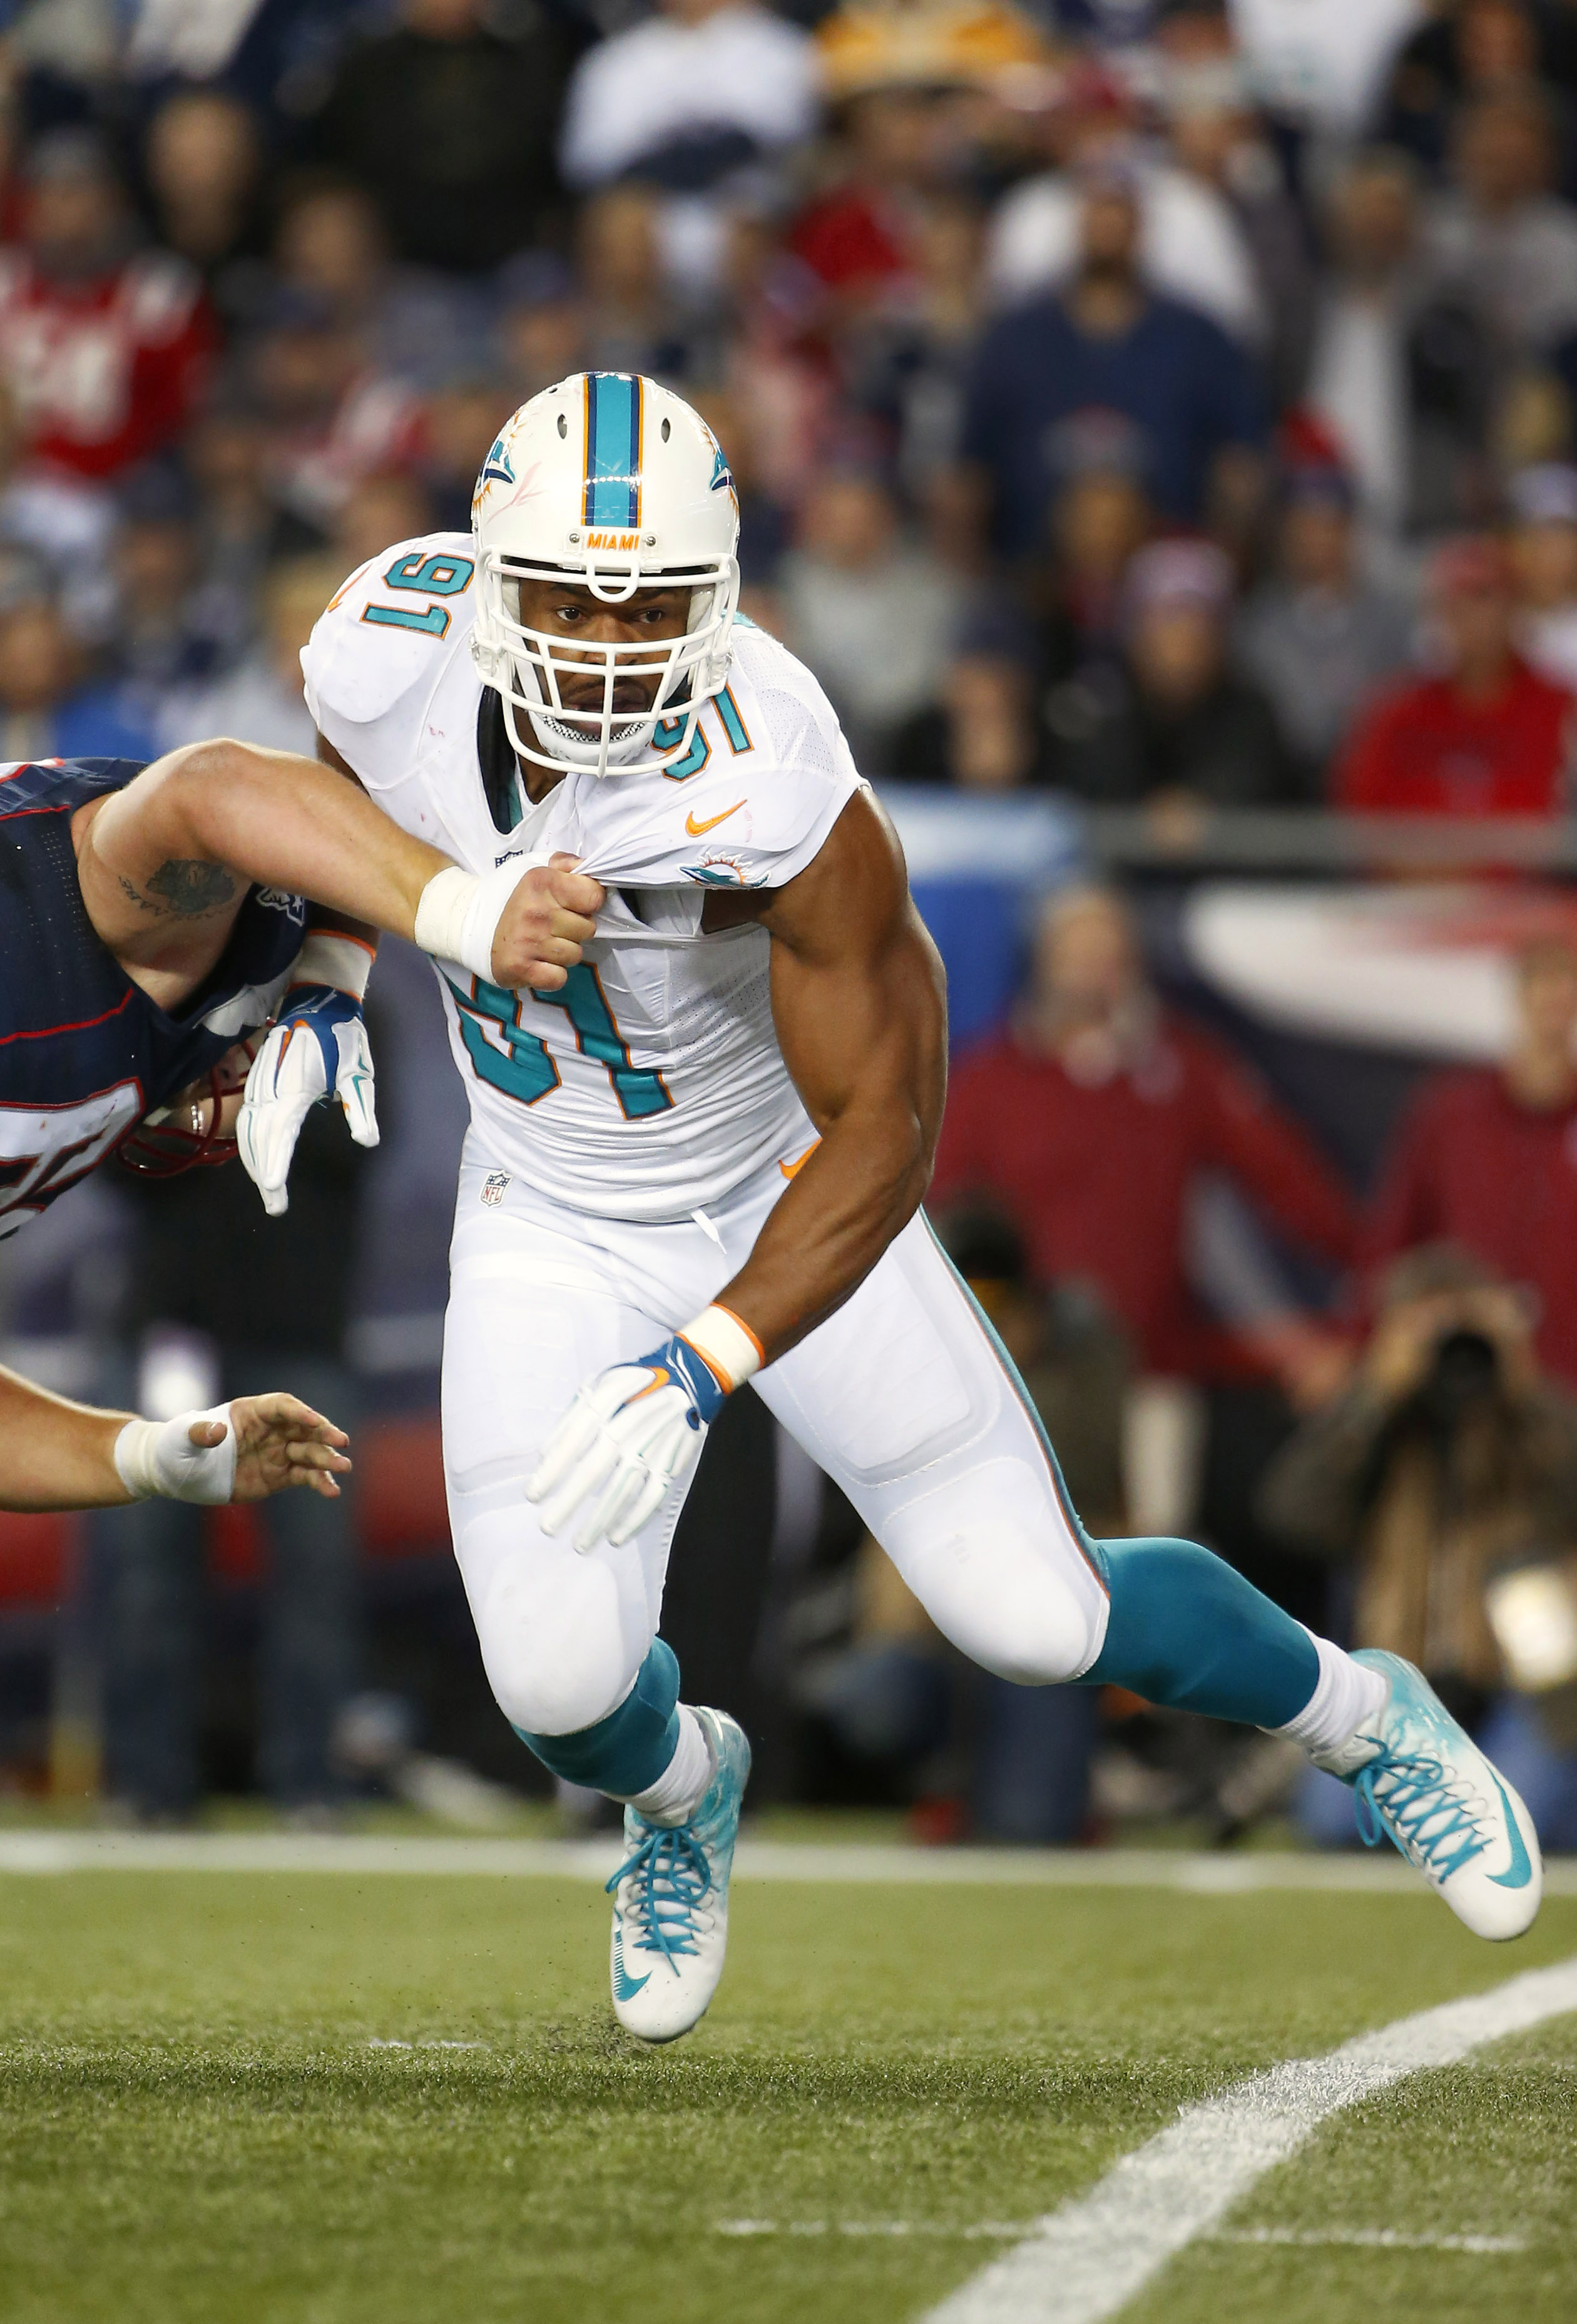 Miami Dolphins defensive end Cameron Wake rushes against the New England Patriots during a NFL football game at Gillette Stadium in Foxborough, Mass. Thursday, Oct. 29, 2015. (Winslow Townson/AP Images for Panini)